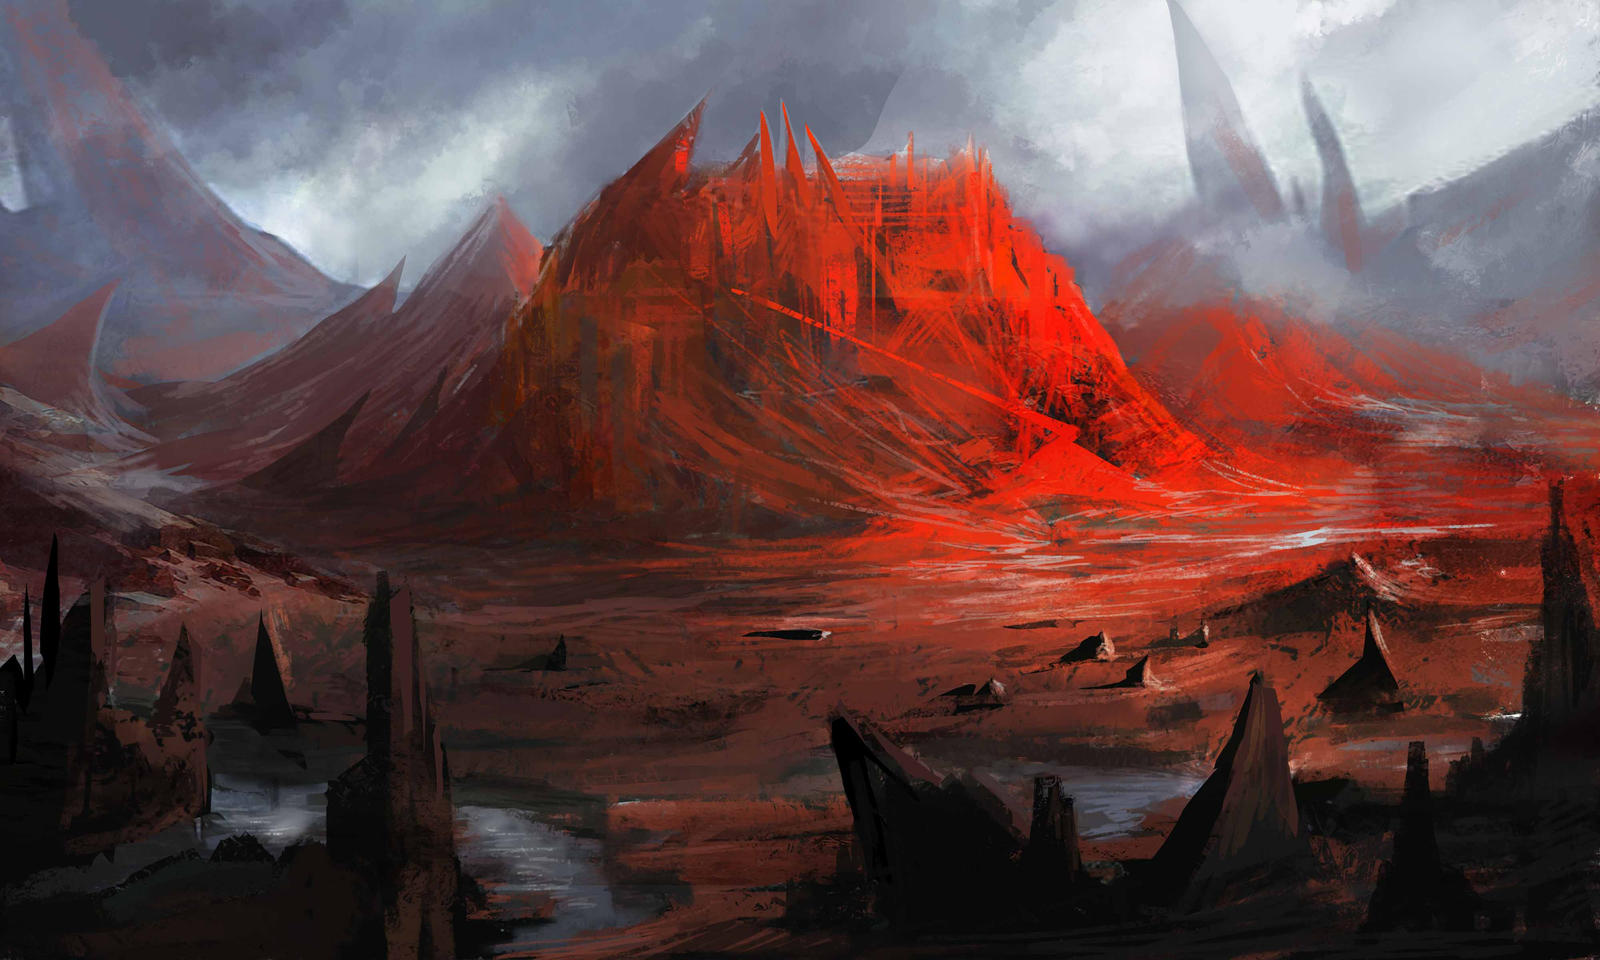 Red Mountain by Darkcloud013